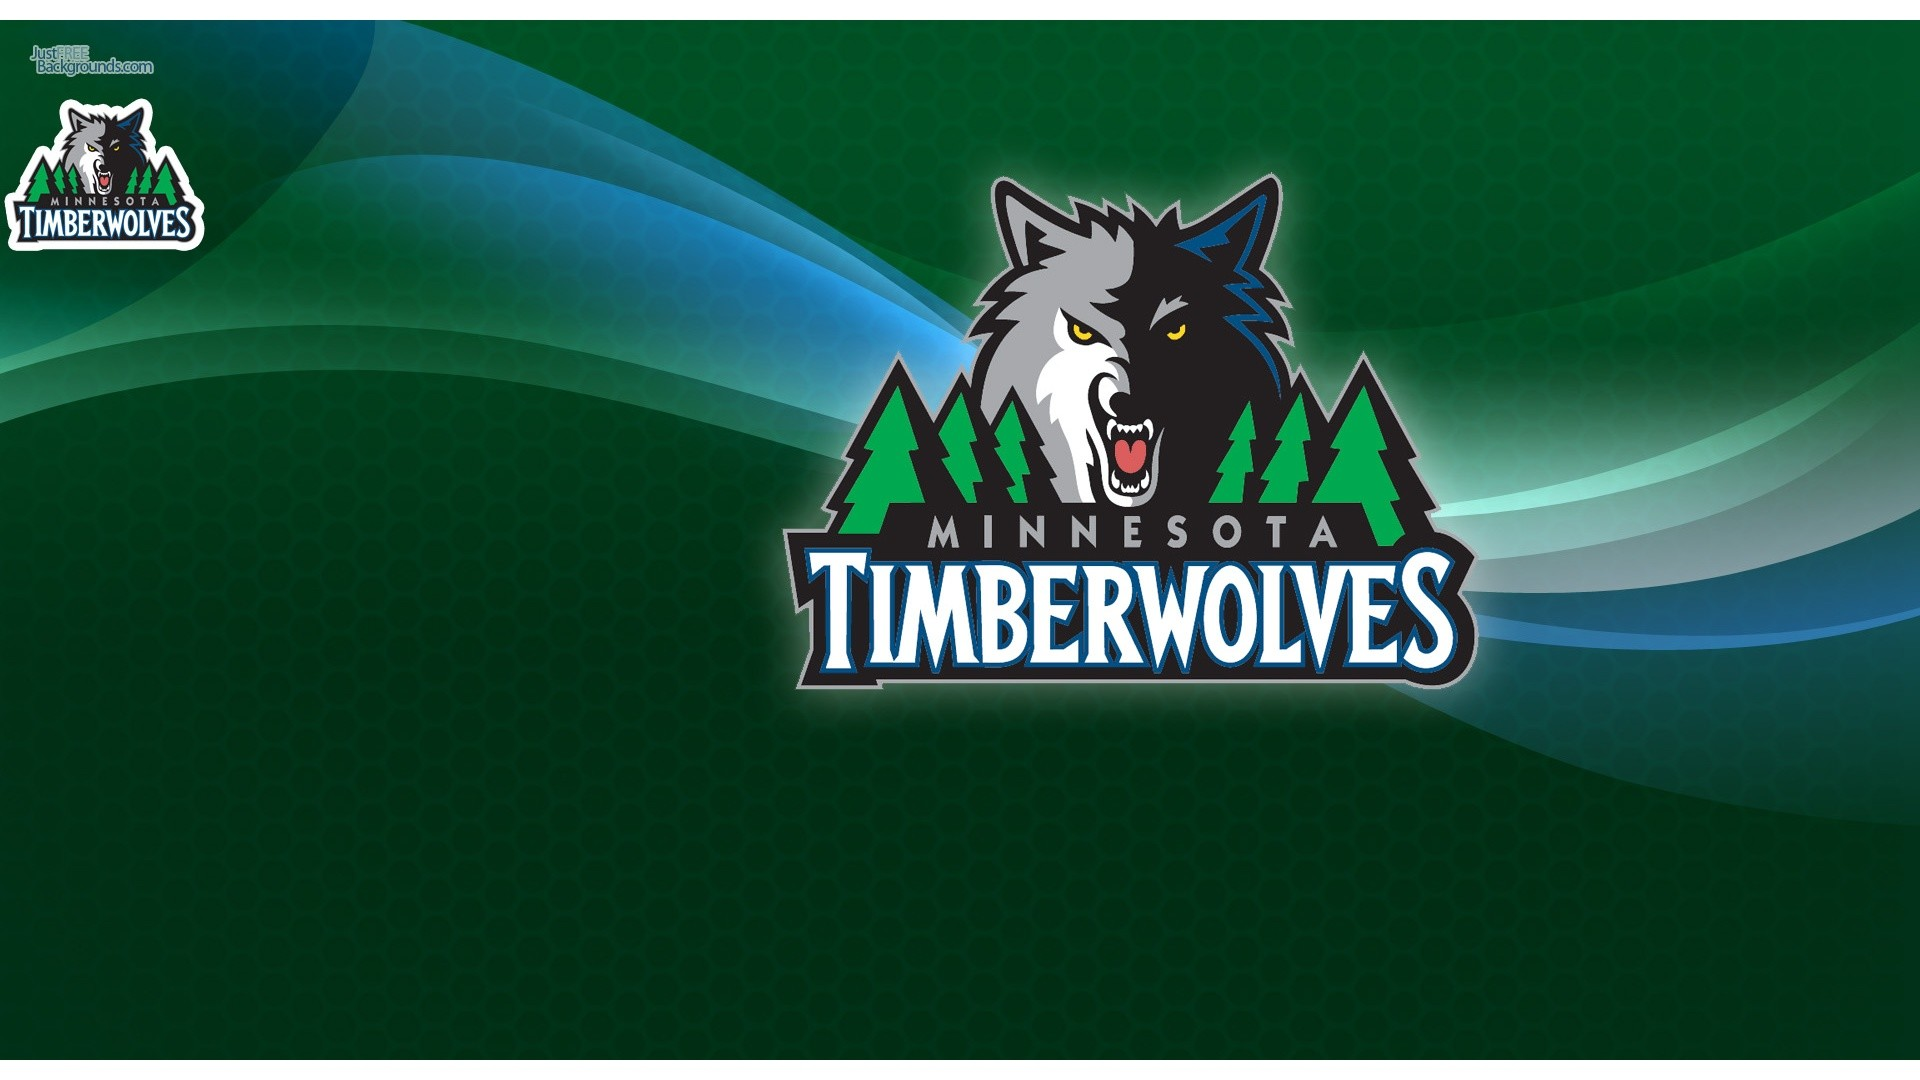 1920x1080 minnesota timberwolves wallpapers - photo #8